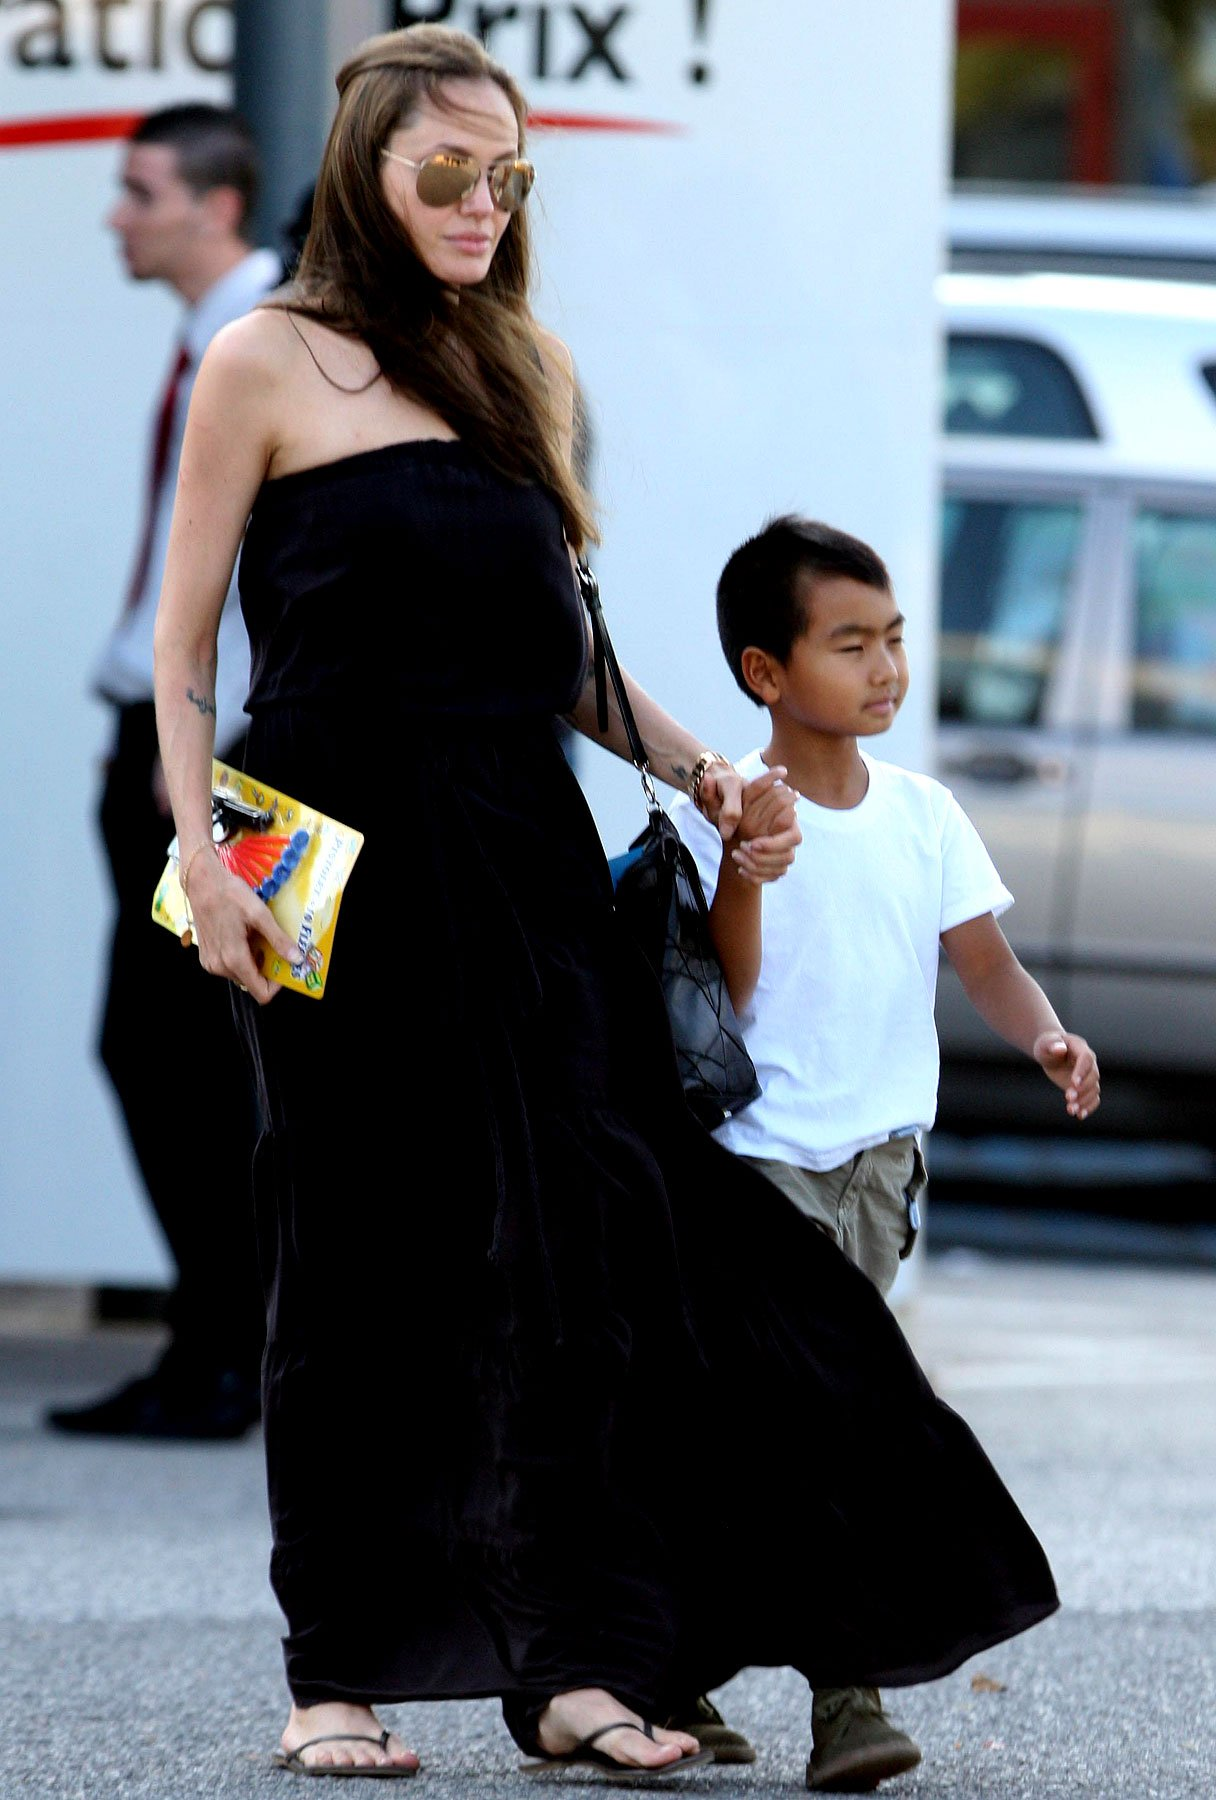 PHOTO GALLERY: Angelina Jolie and Maddox Are Gunning for Success